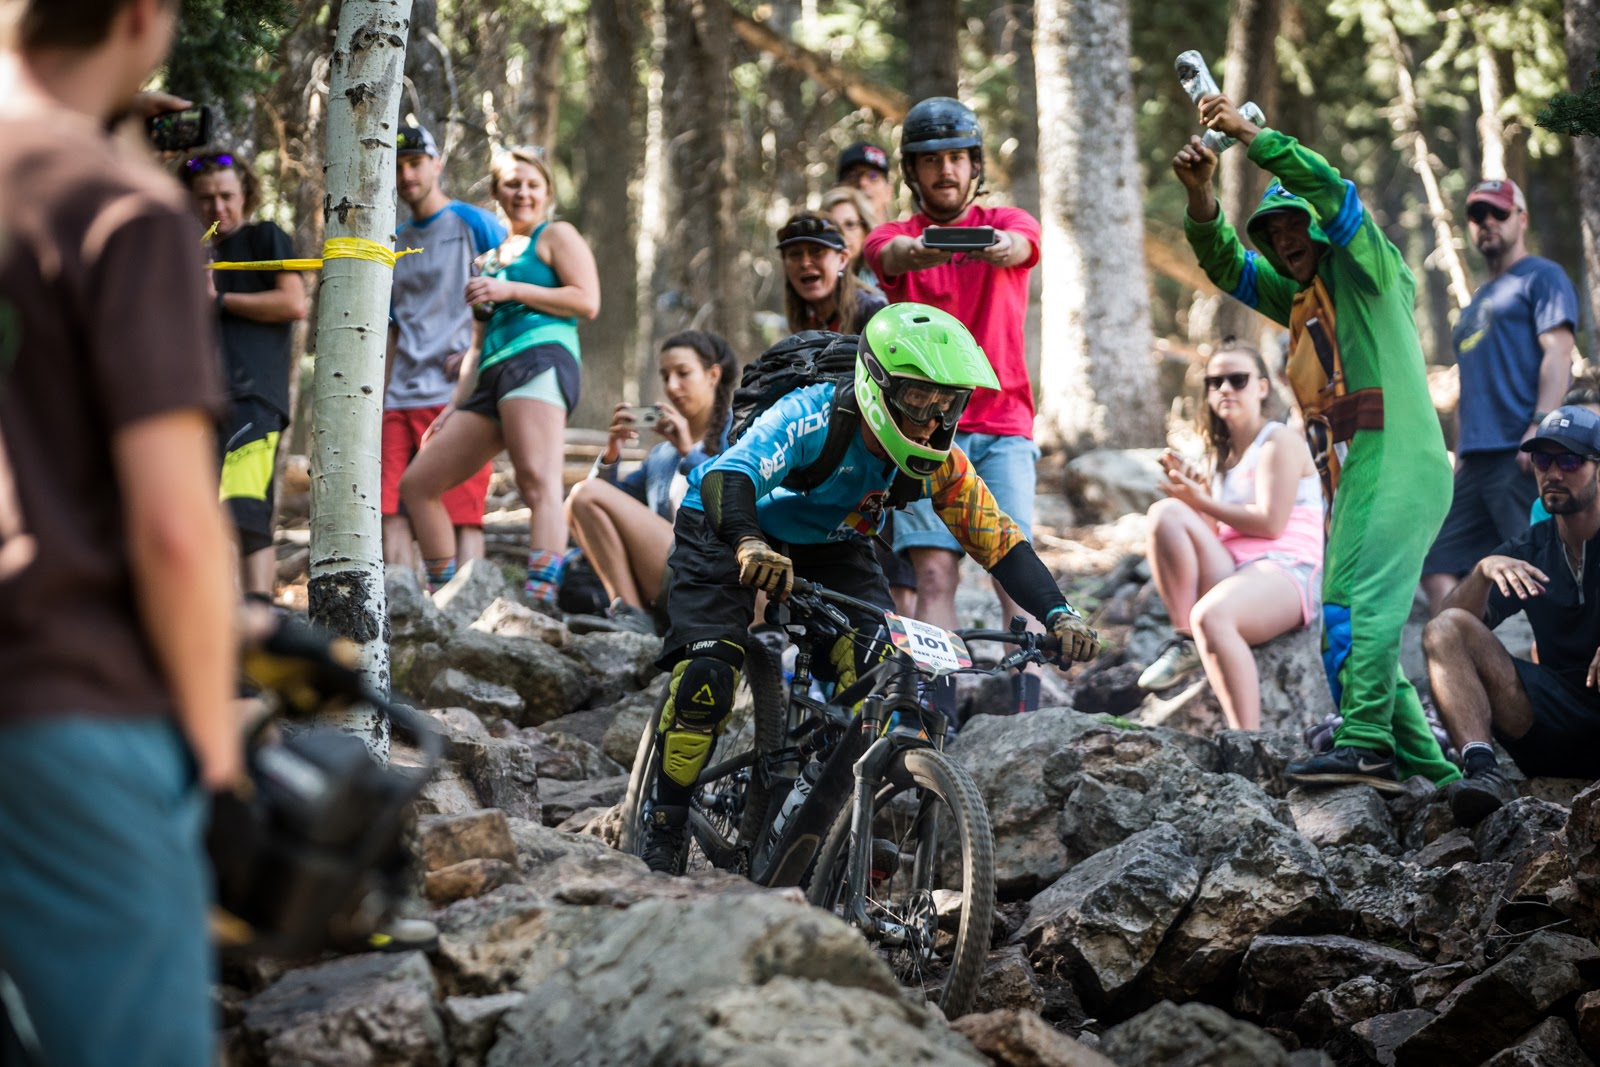 Jacob Levine races stage 6 of Round 4 in the Vet Expert Men's Division of the 2017 SCOTT Enduro Cup